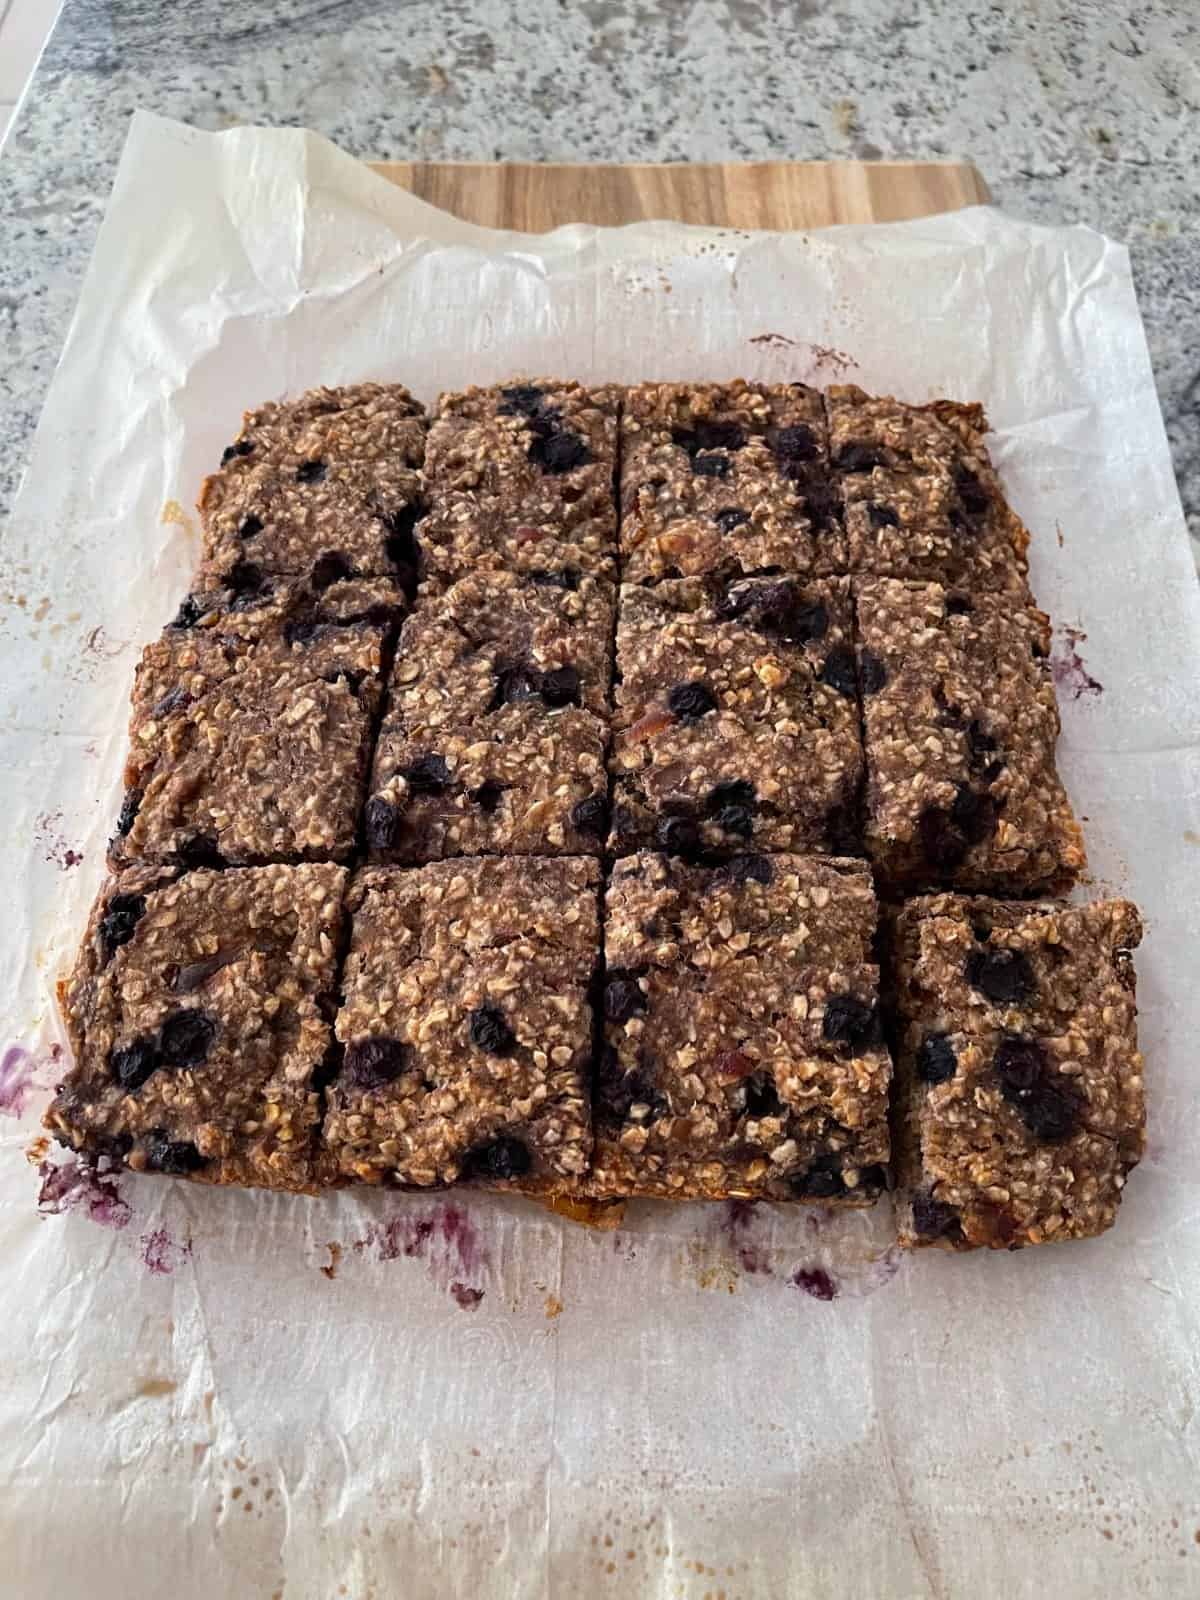 Blueberry banana oat squares on parchment paper.